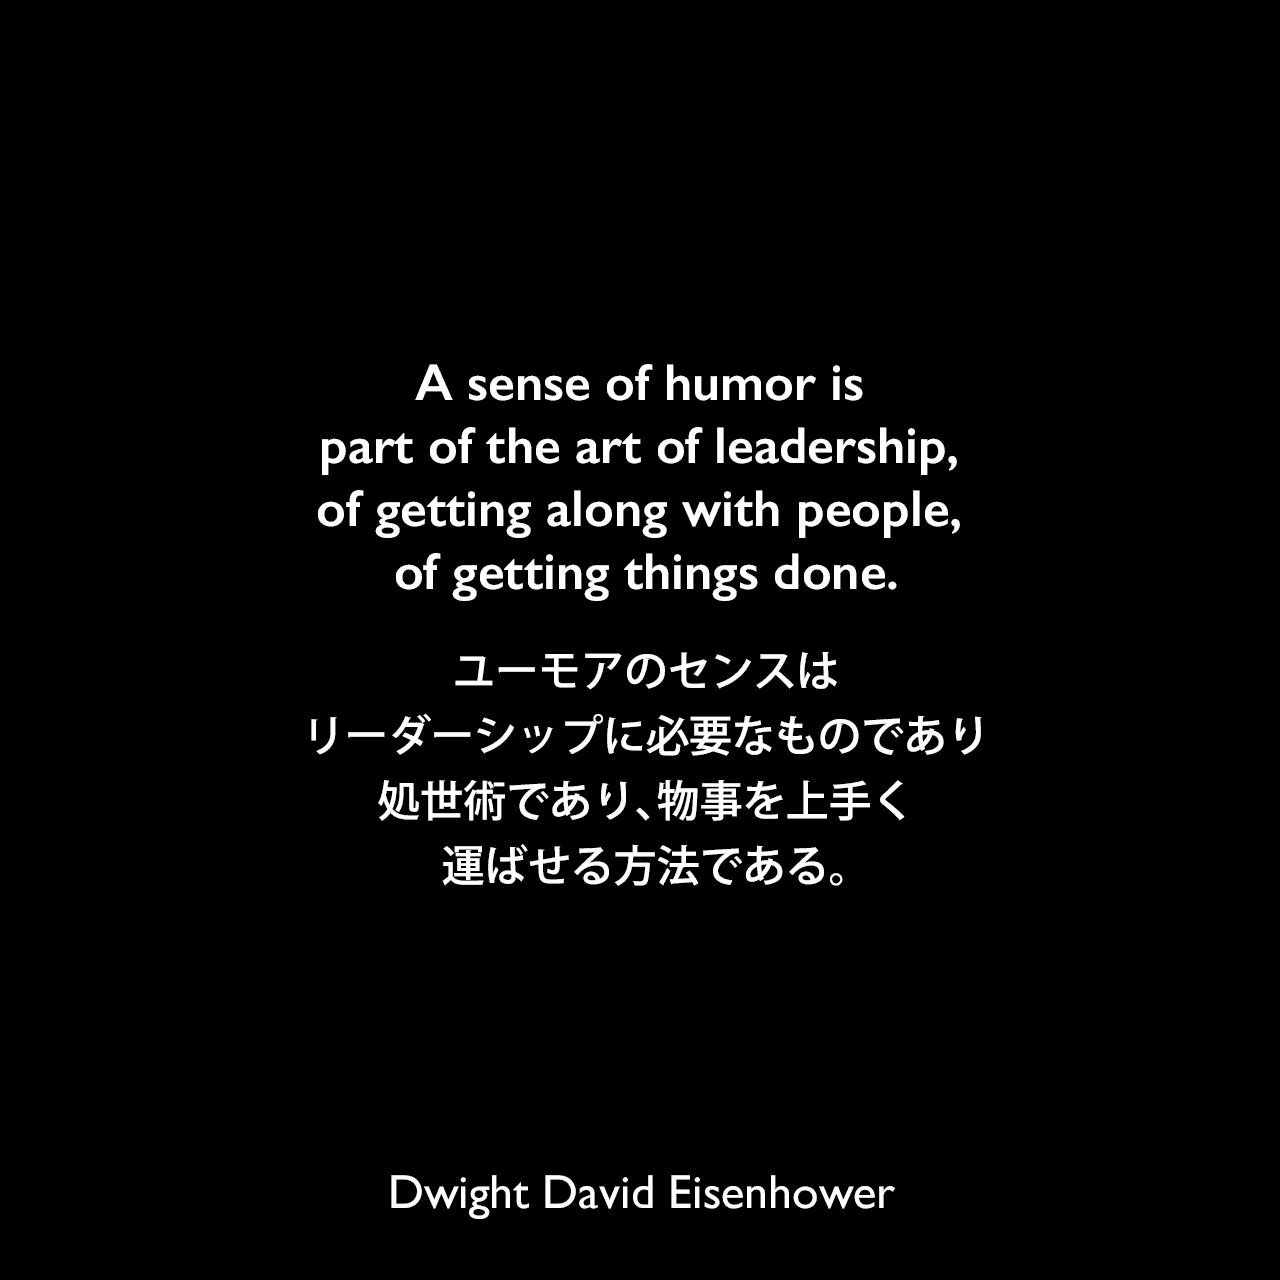 A sense of humor is part of the art of leadership, of getting along with people, of getting things done.ユーモアのセンスはリーダーシップに必要なものであり、処世術であり、物事を上手く運ばせる方法である。Dwight David Eisenhower